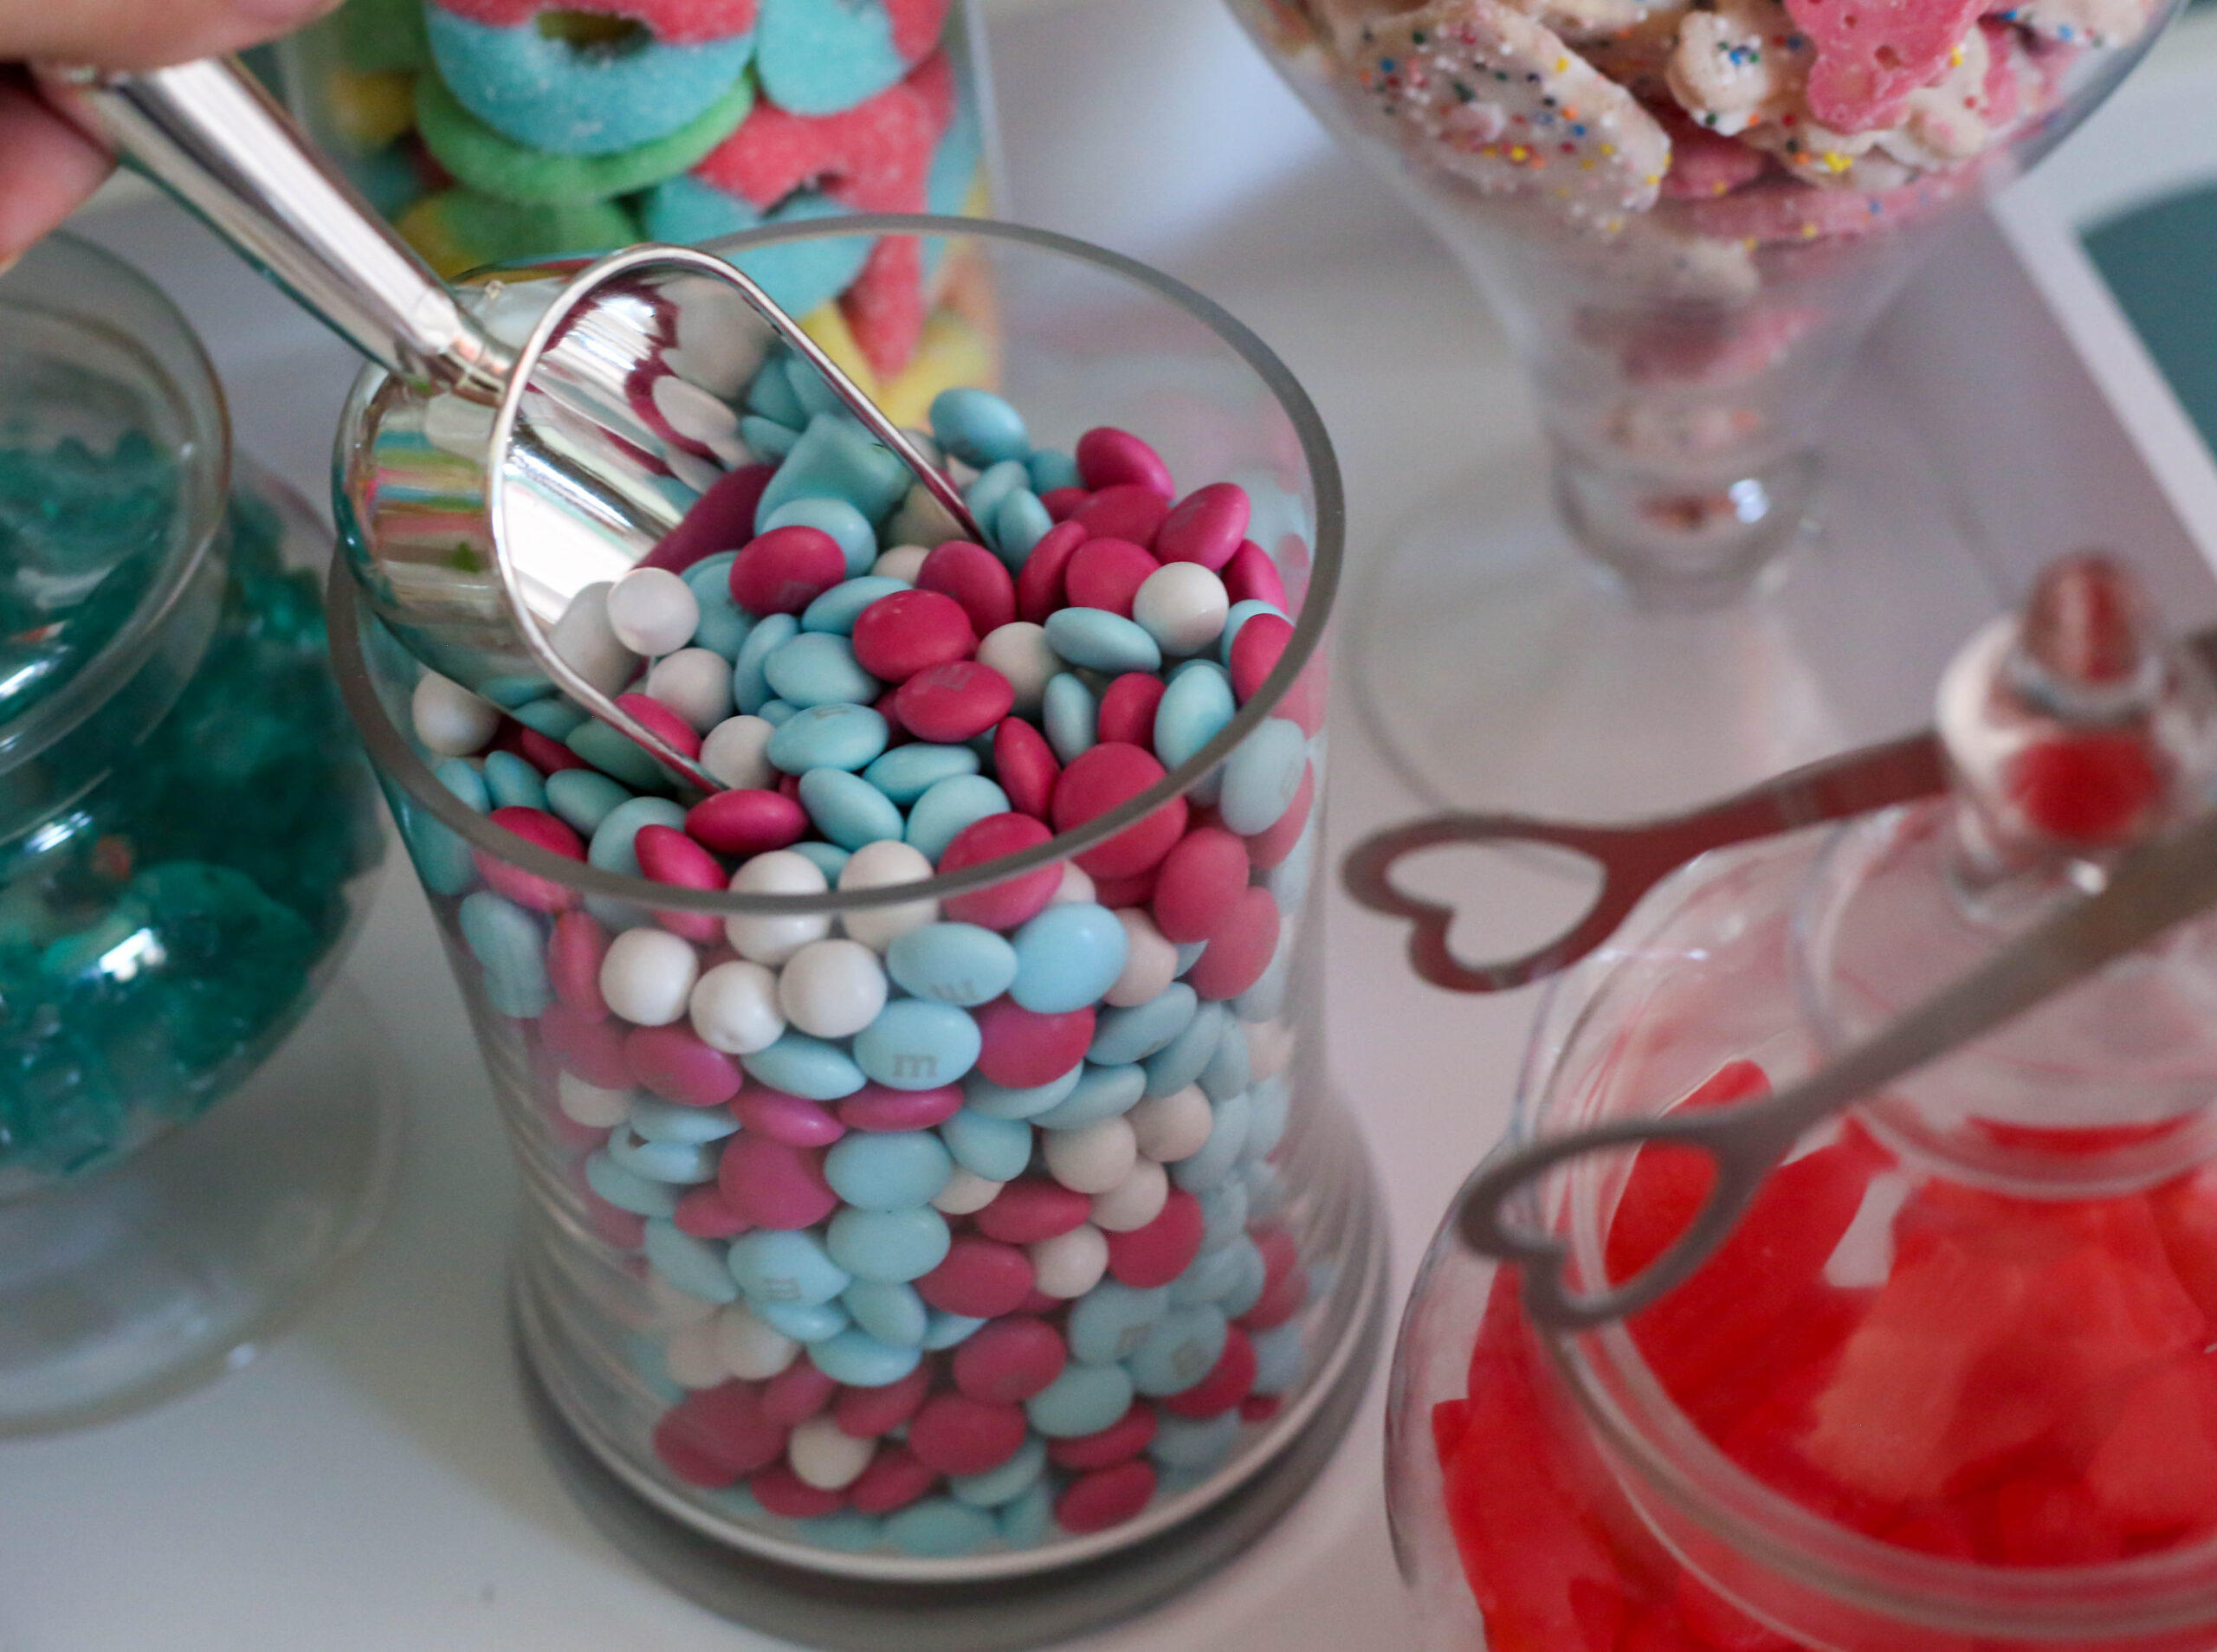 m&ms candy at a candy theme party in a glass candy jar with silvertone scoop